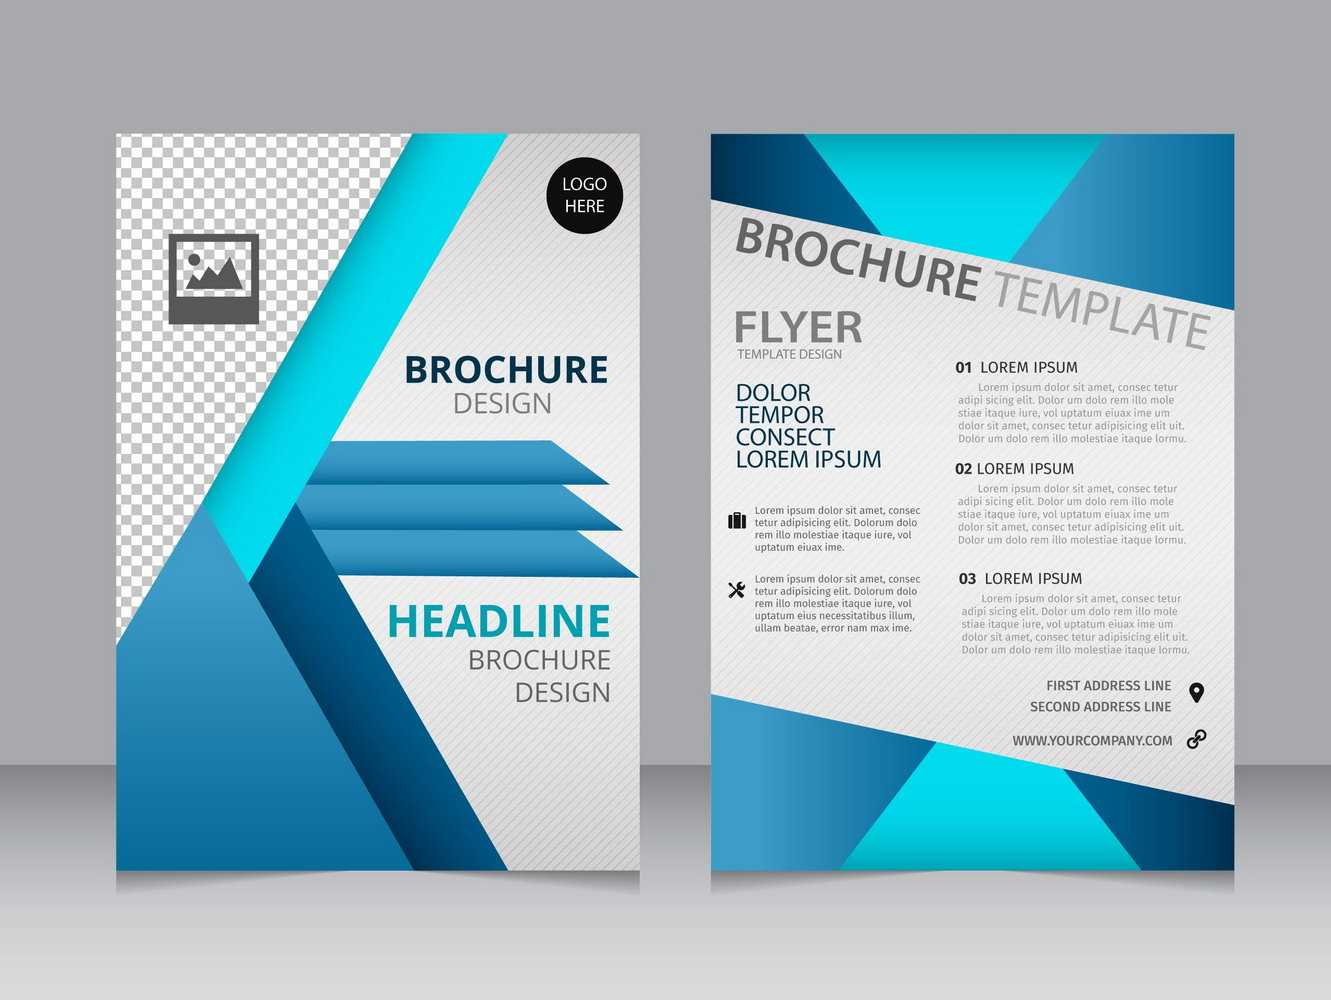 007 Blank Brochure Templates Free Download Word Template Regarding Free Illustrator Brochure Templates Download